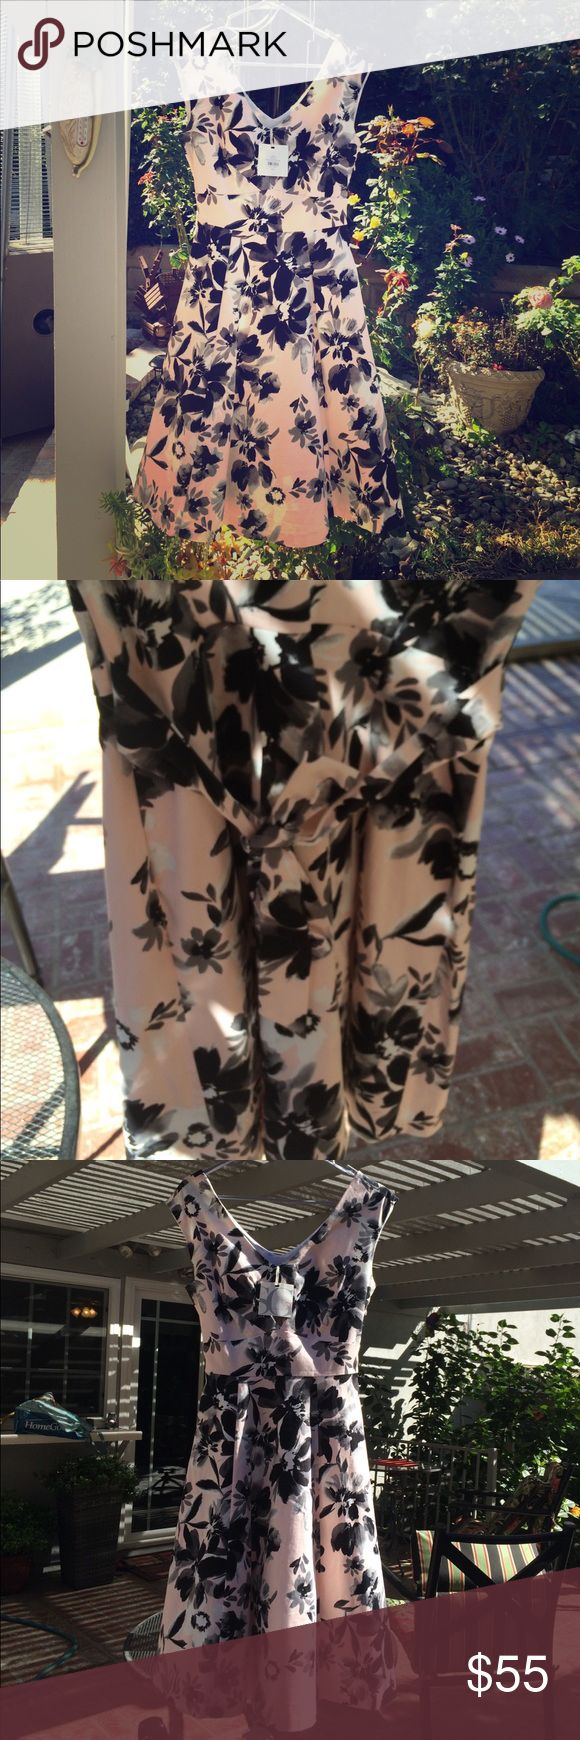 BOUGHT IN LONDON,UK NWT A line below knee dress Classy & elegant A line dress with petticoat under to give extra flair! Gray, black & white floral print on a peachy pink dress perfect for English tea ! Authentic bought in London BHS (British Home Store) for £55 ($72) sophie gray Dresses Midi